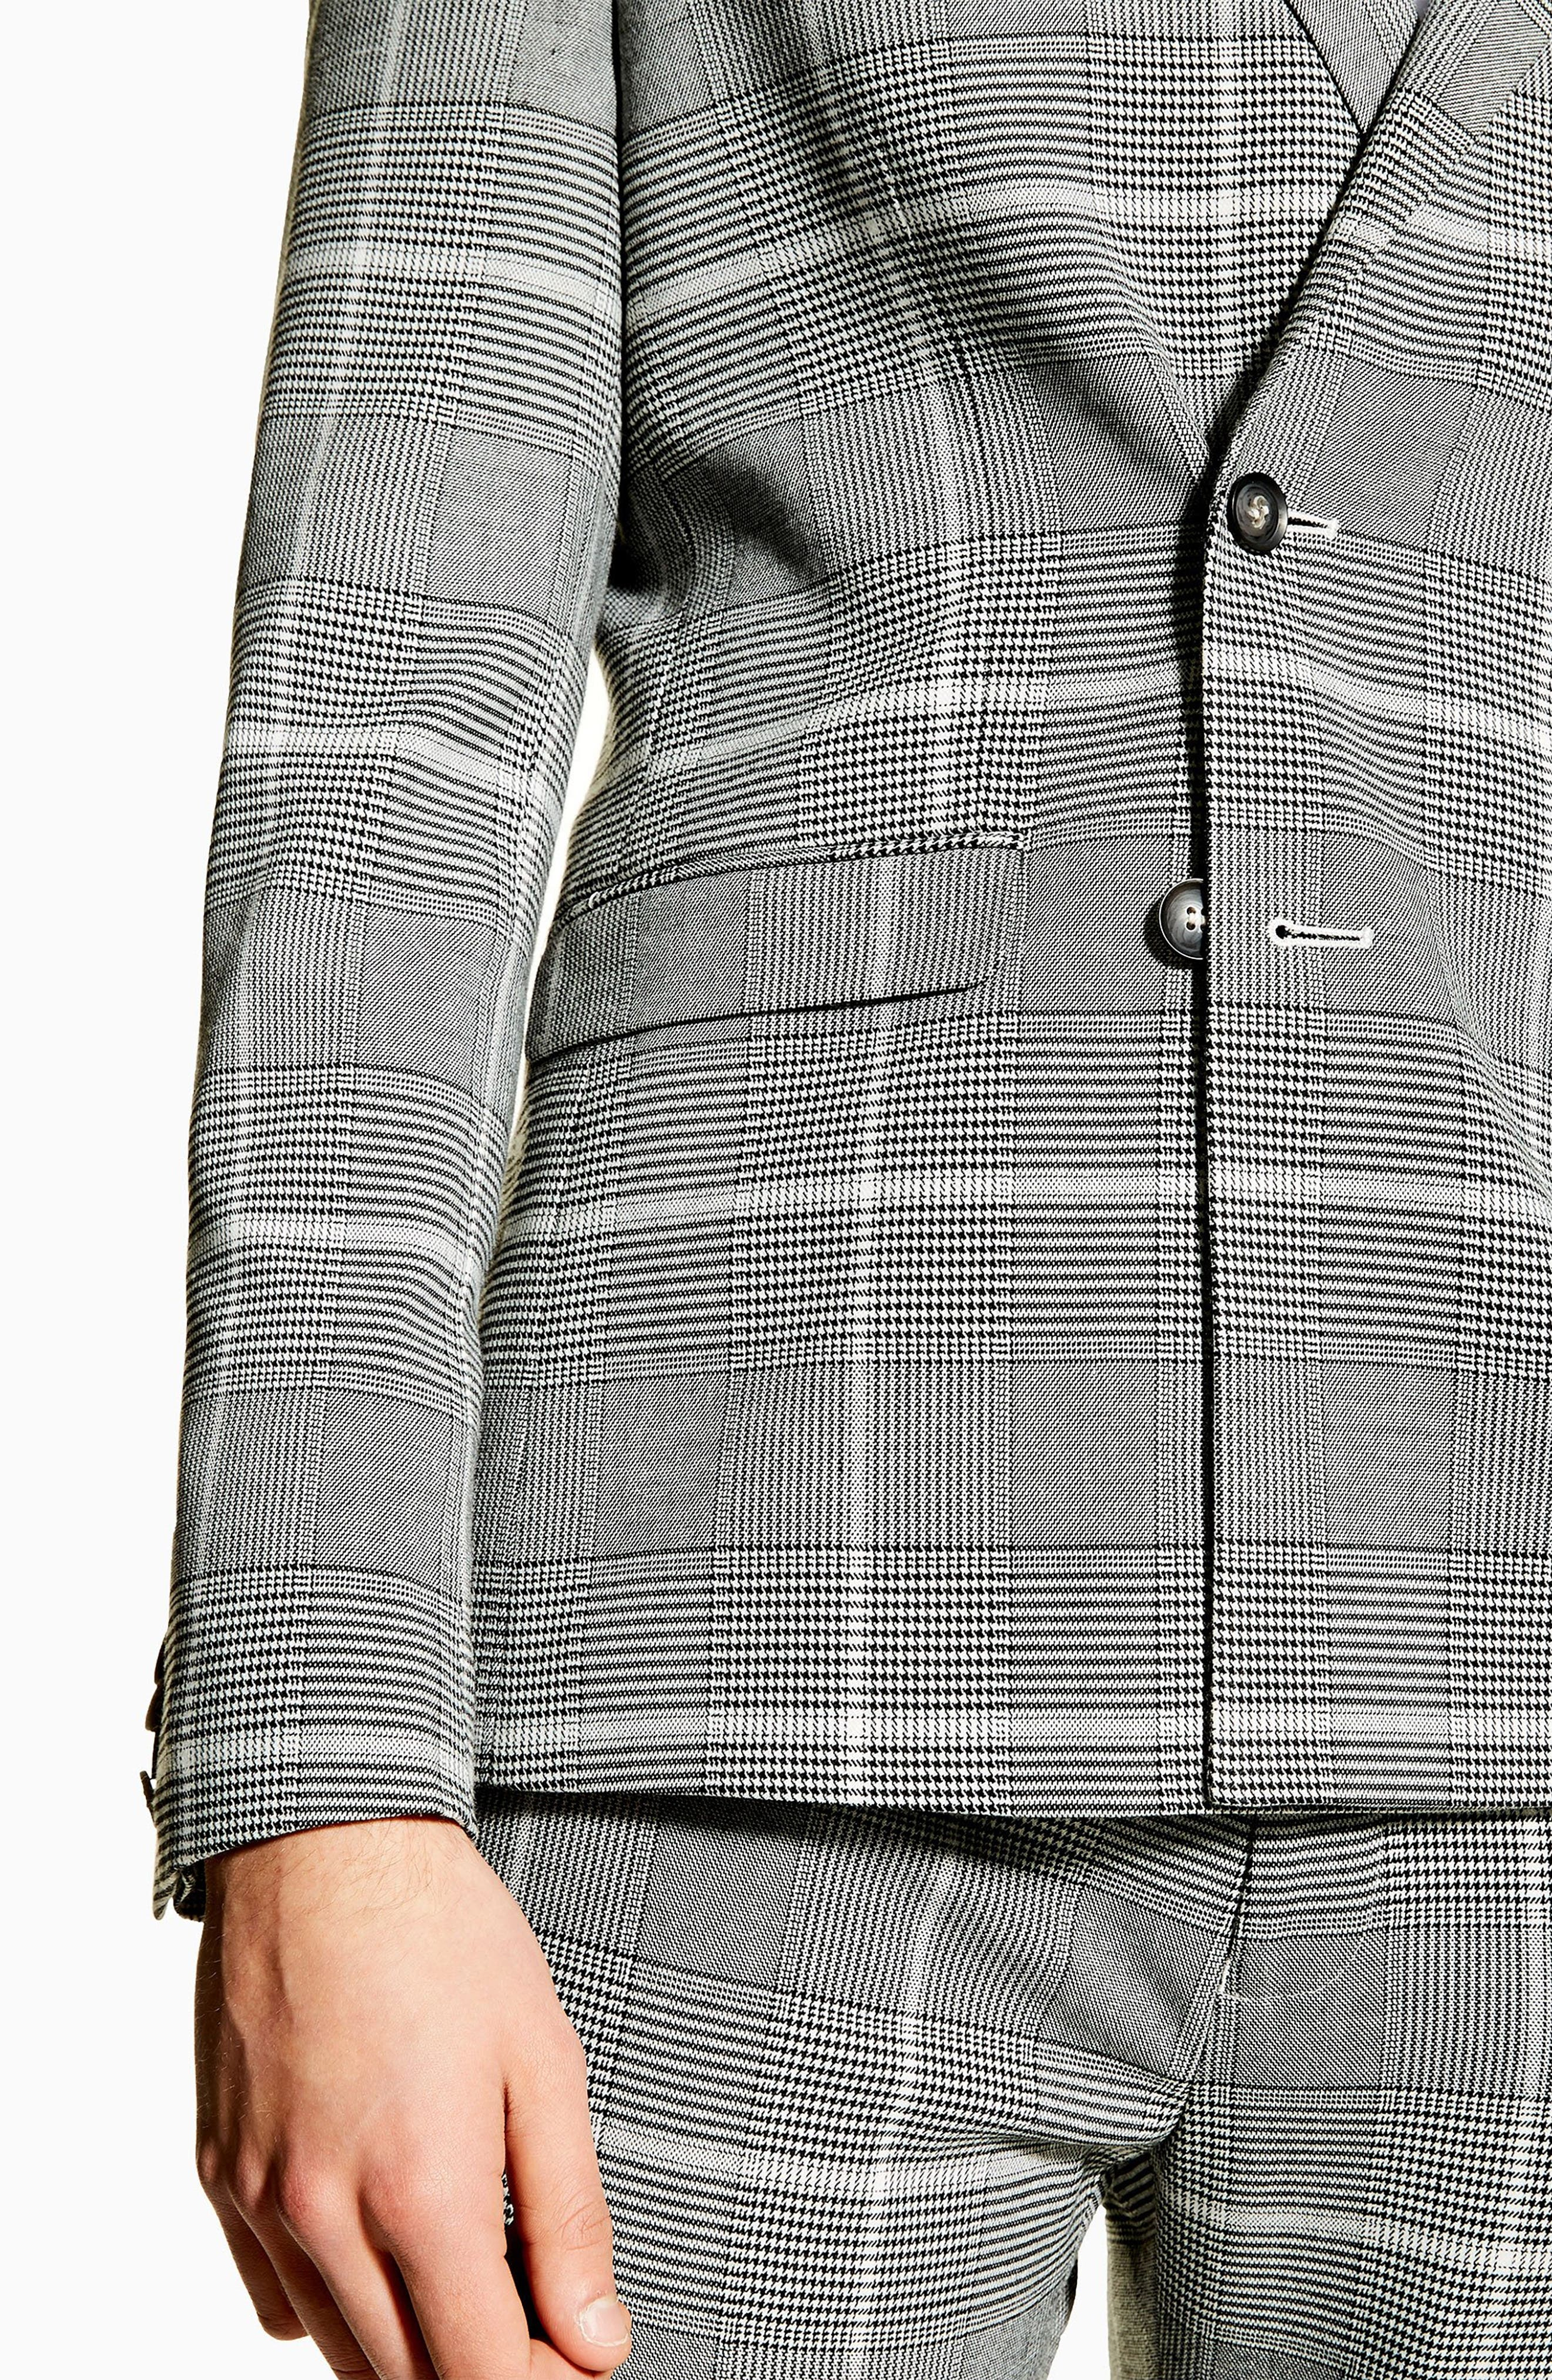 TOPMAN, Skinny Fit Check Suit Jacket, Alternate thumbnail 6, color, 020